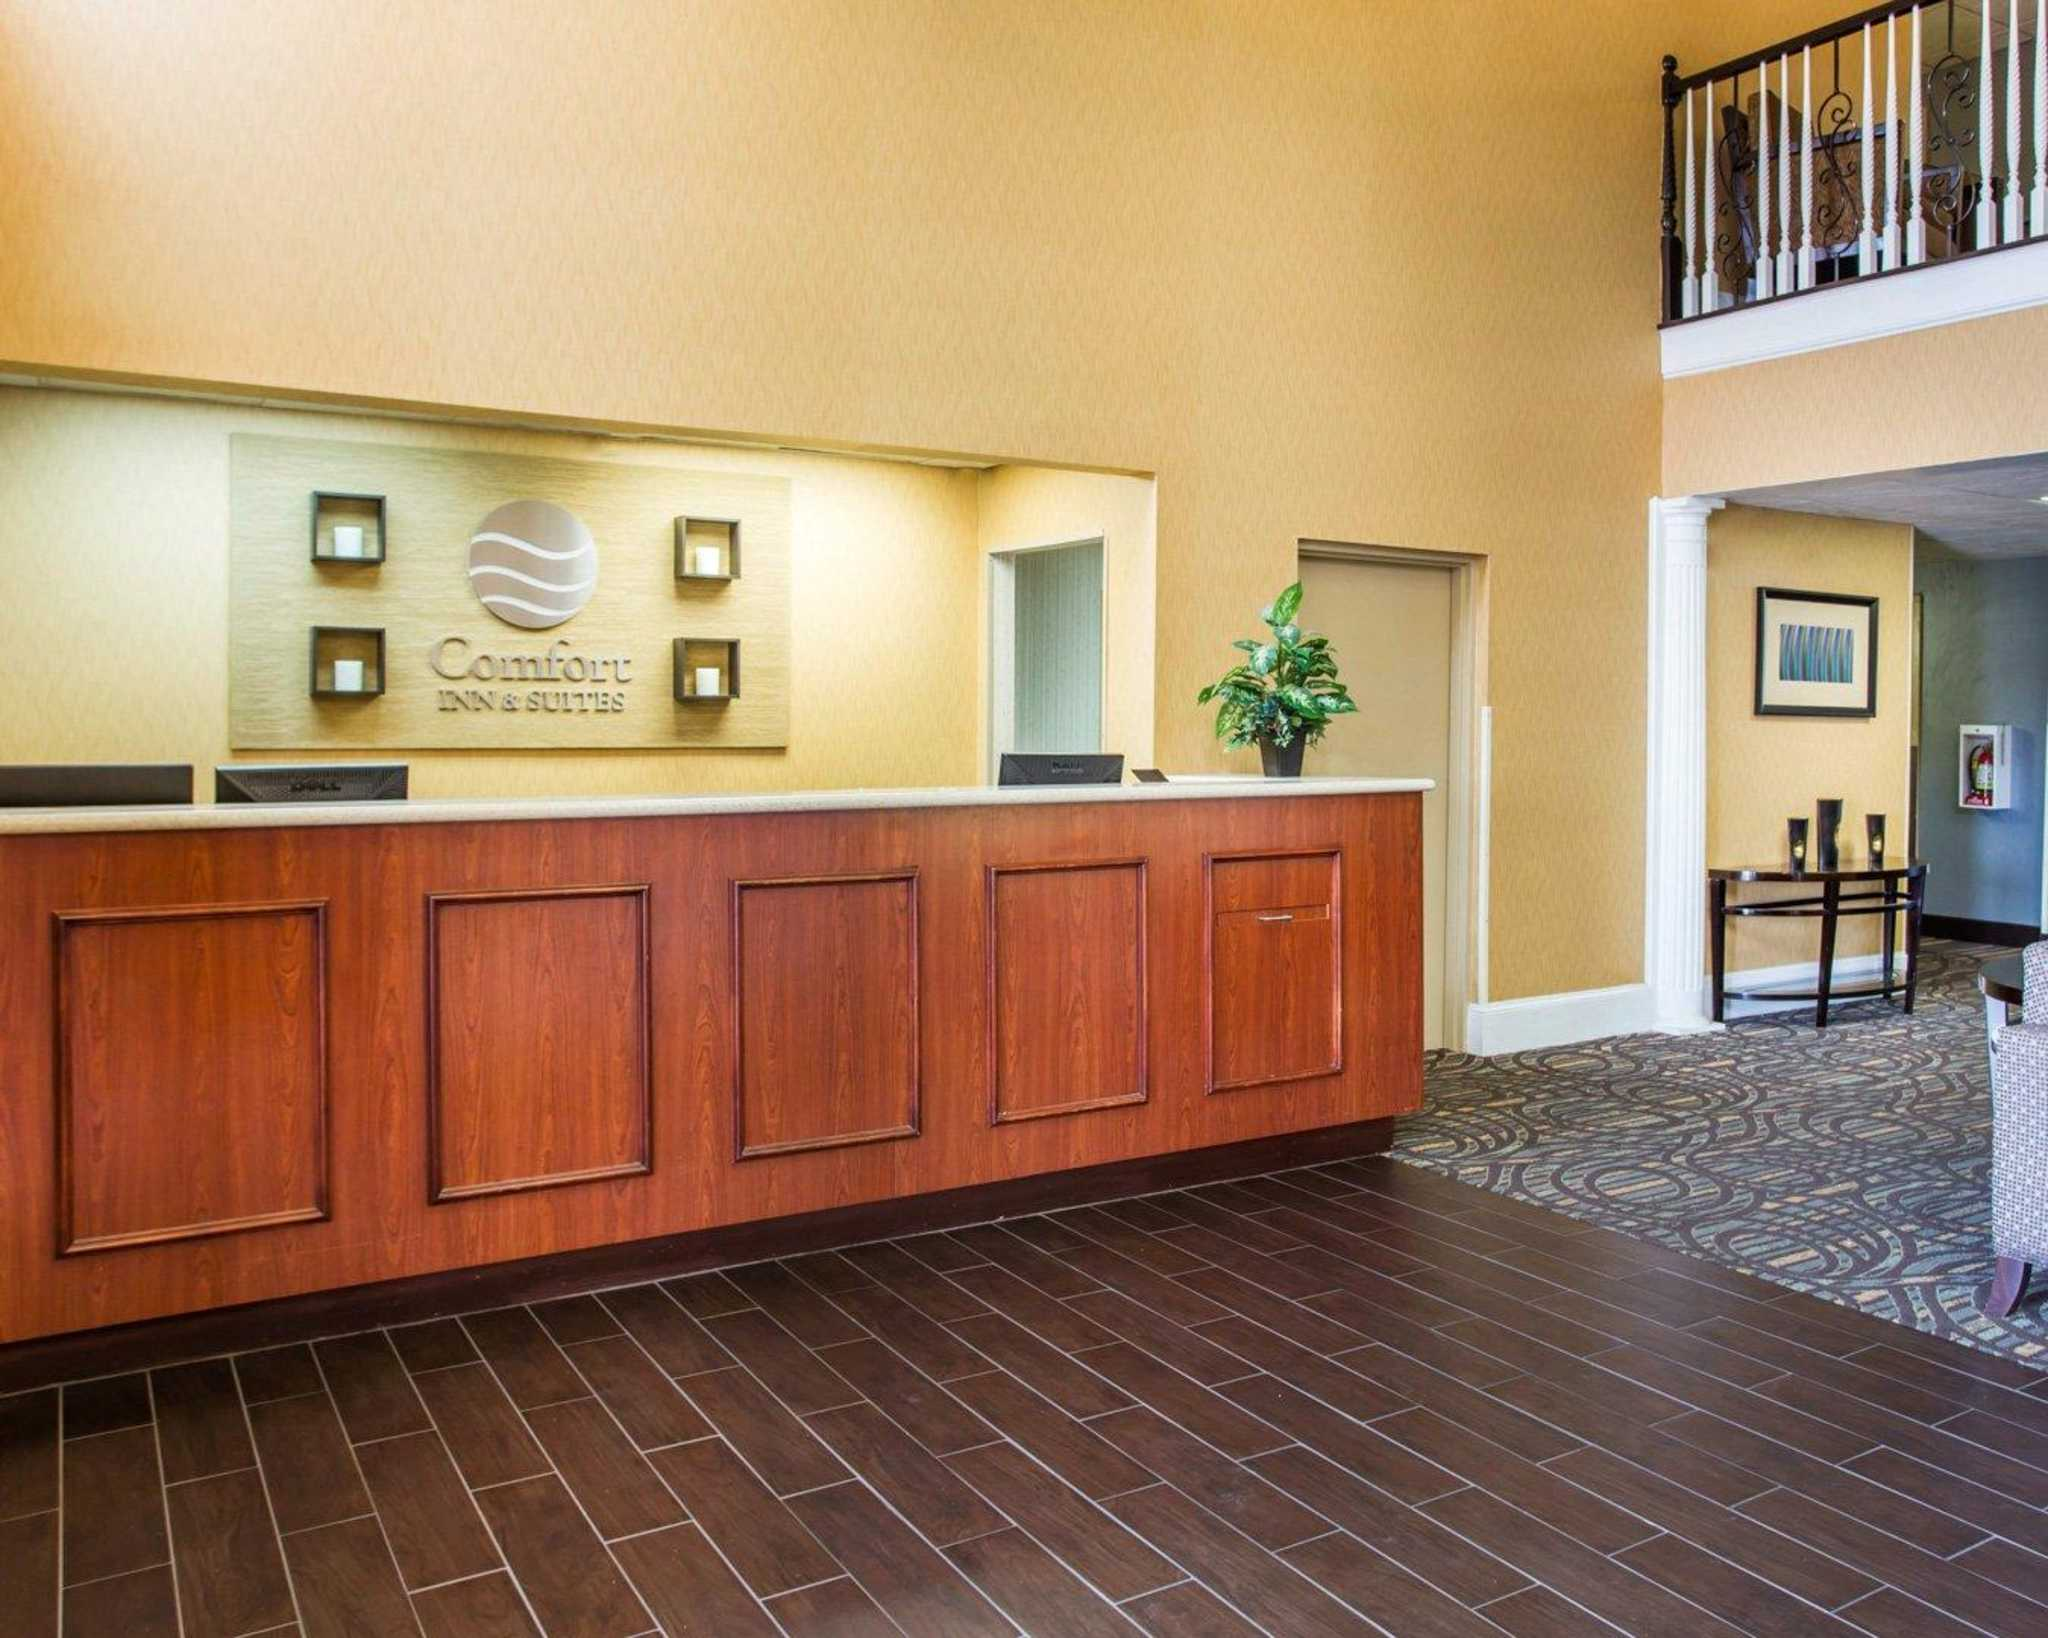 Comfort Inn & Suites at Stone Mountain image 11